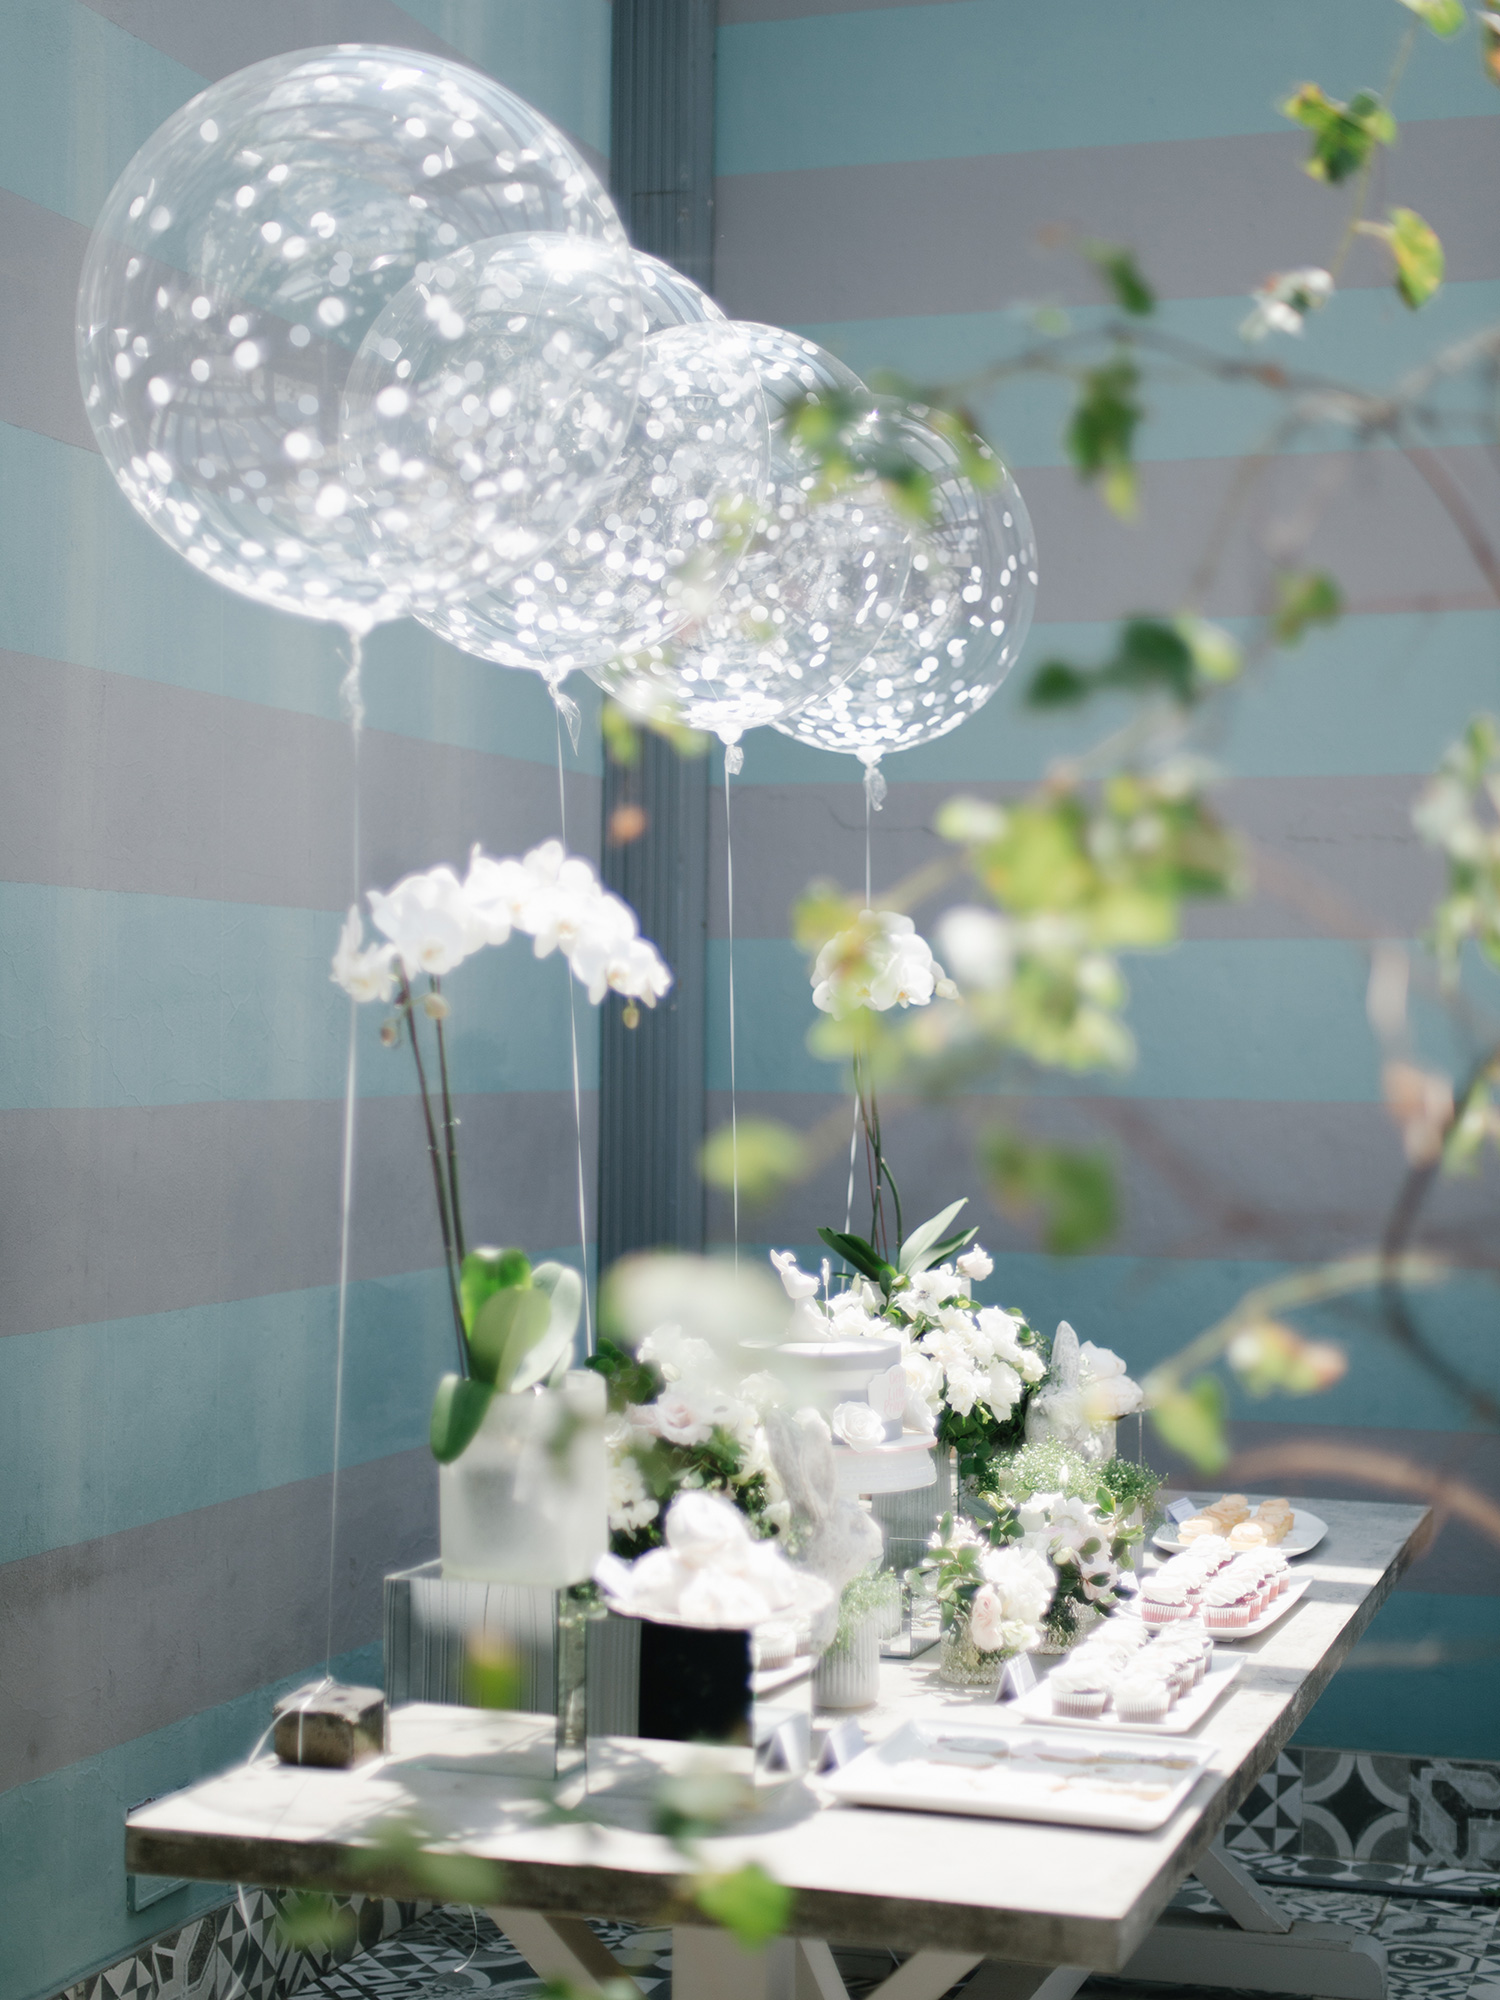 BABY SHOWER BY SPLENDID WEDDING CO